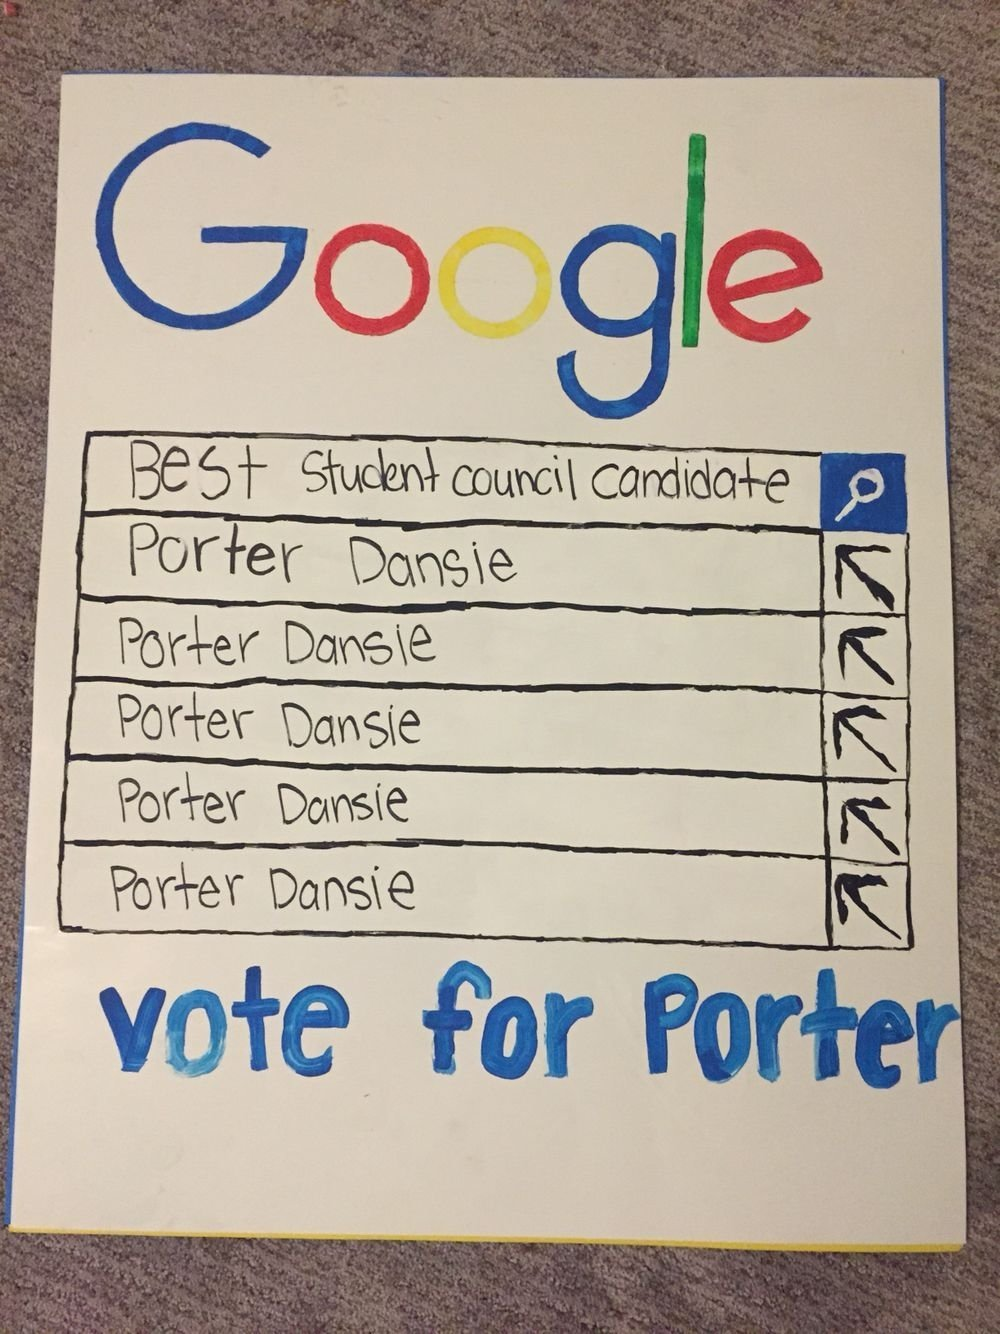 10 Fantastic Elementary School Student Council Ideas student council poster google poster student council elections 6 2021